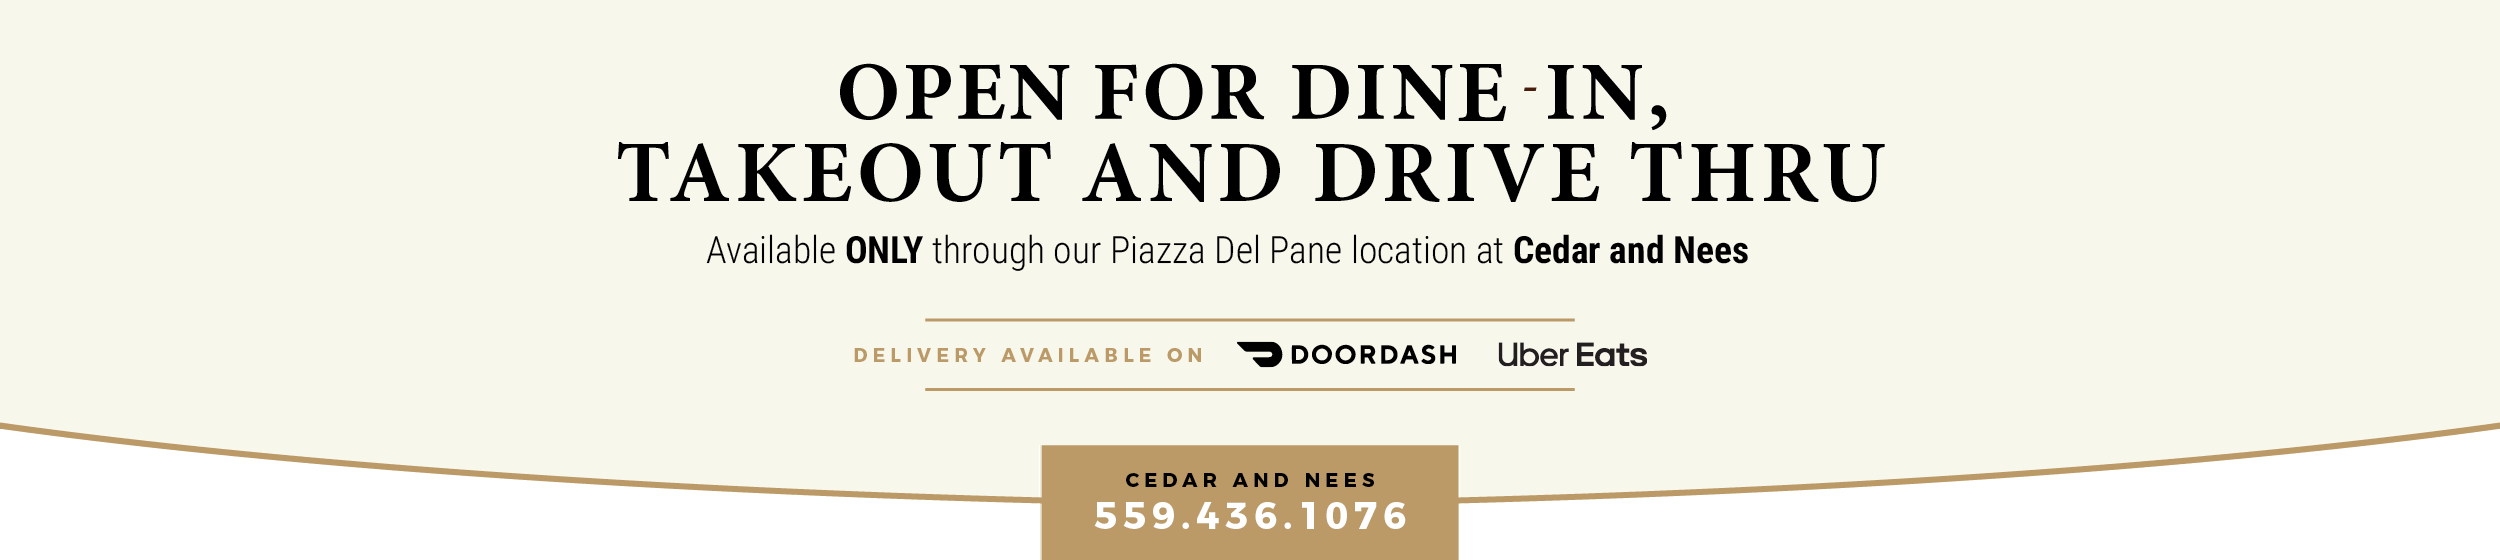 Due to COVID 19, Our dining rooms are temporarily closed. Takeour and Drive Thru available ONLY through our Piazza Del Pane location at Cedar and Nees. Delivery available on Doordash and Uber Eats. Cedar - 559.436.1076.